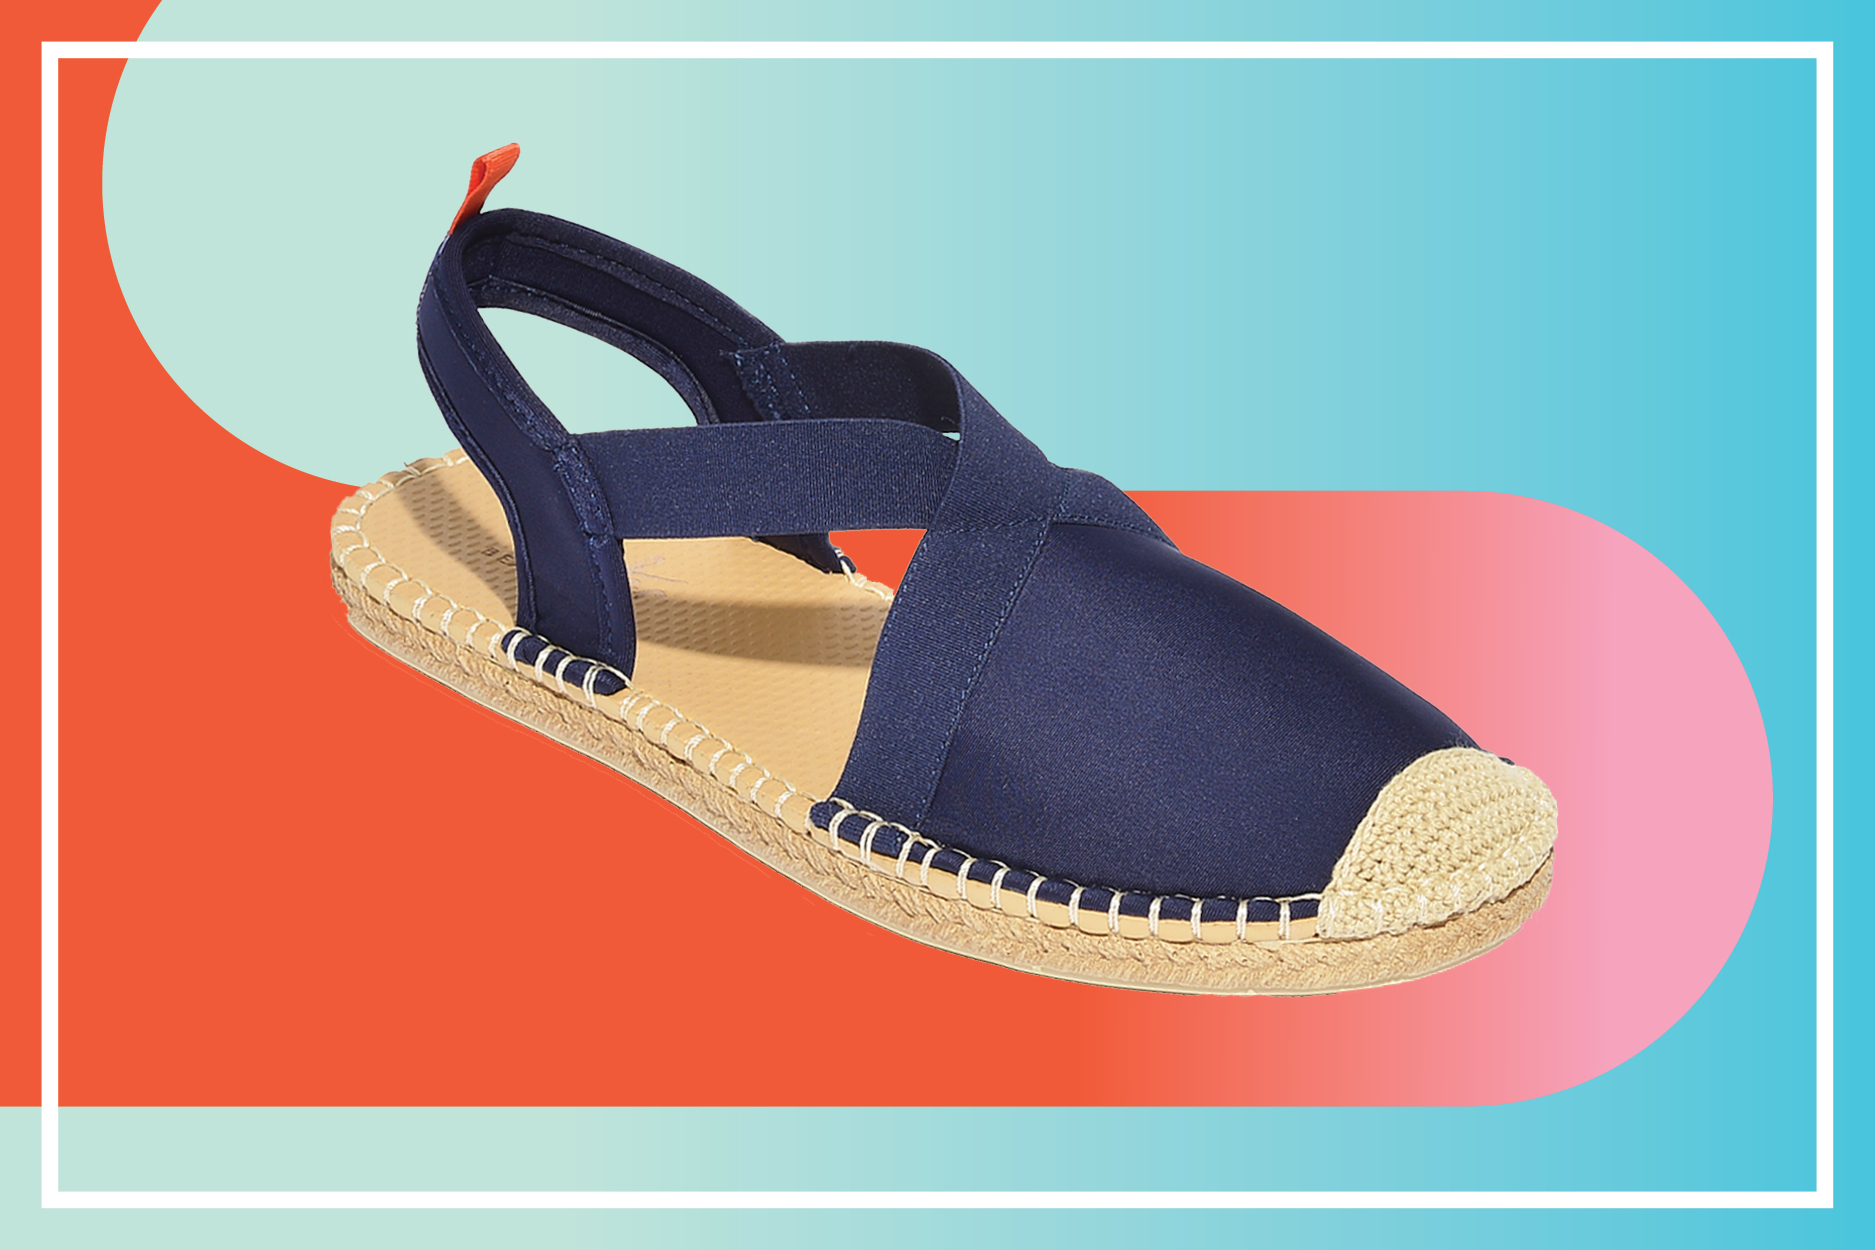 The Best Water Shoes for Men, Women, and Kids